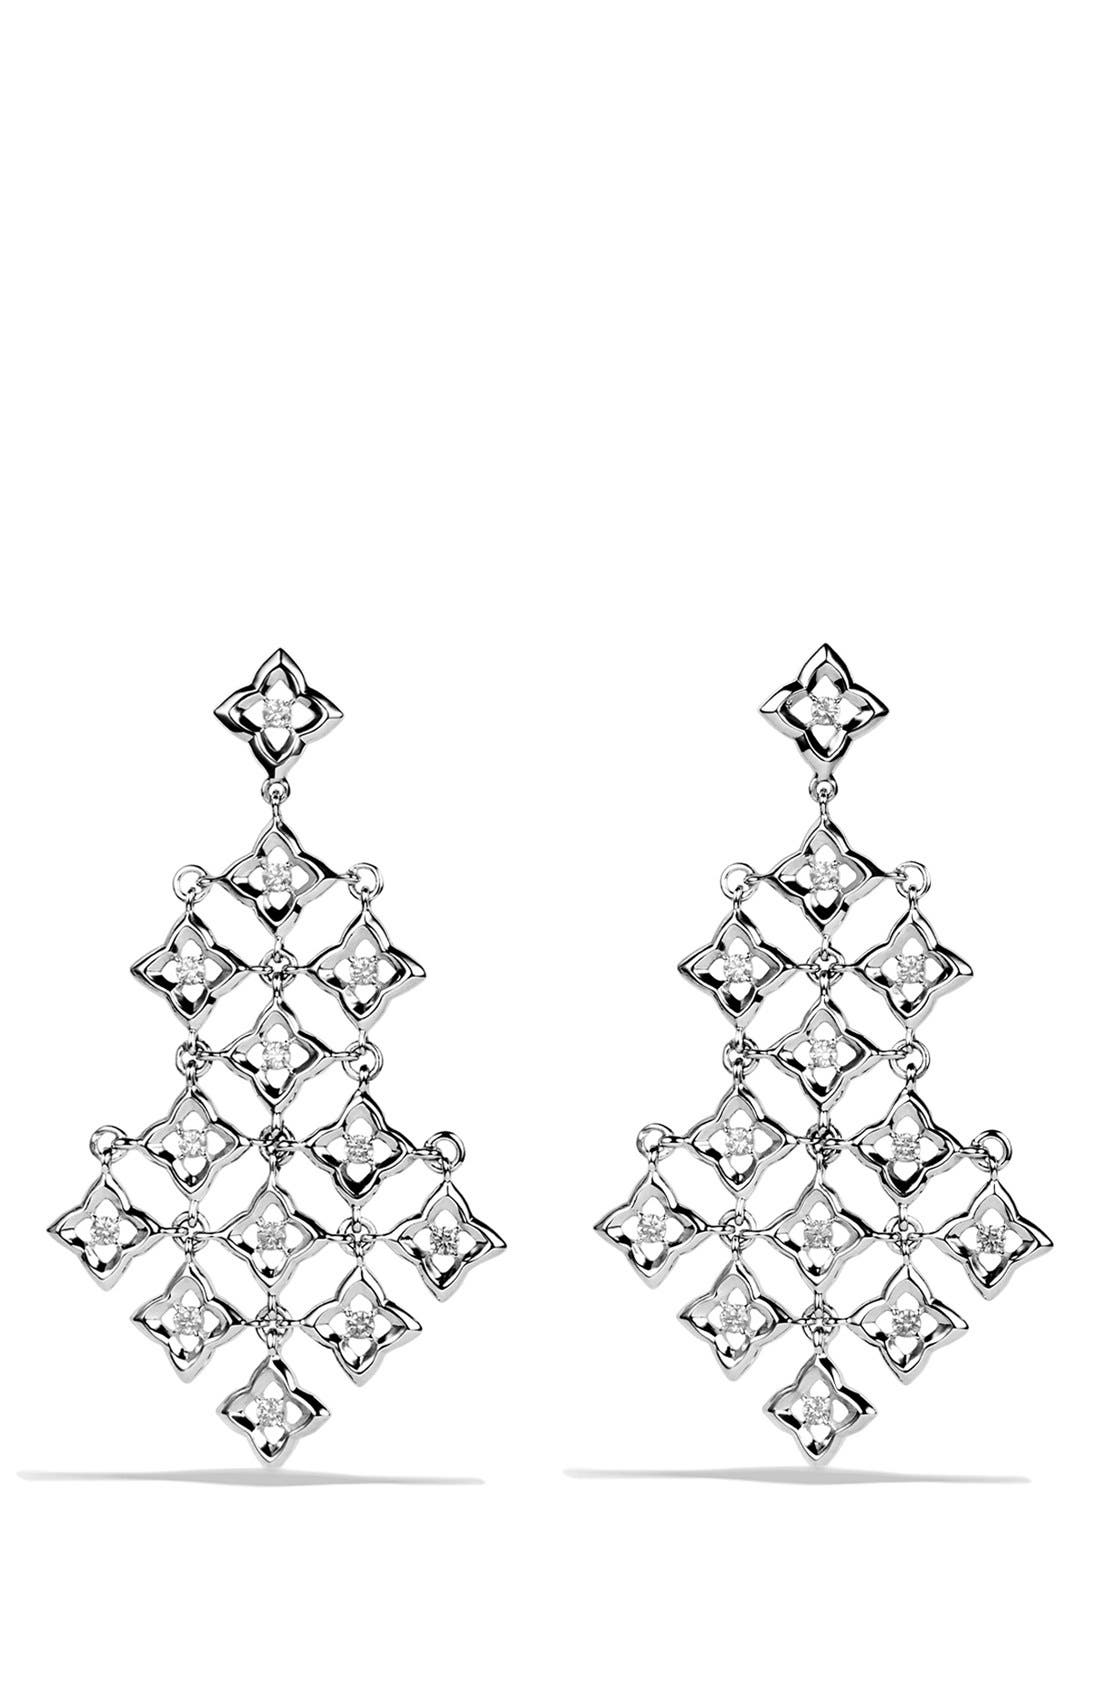 Main Image - David Yurman 'Quatrefoil' Chandelier Earrings with Diamonds